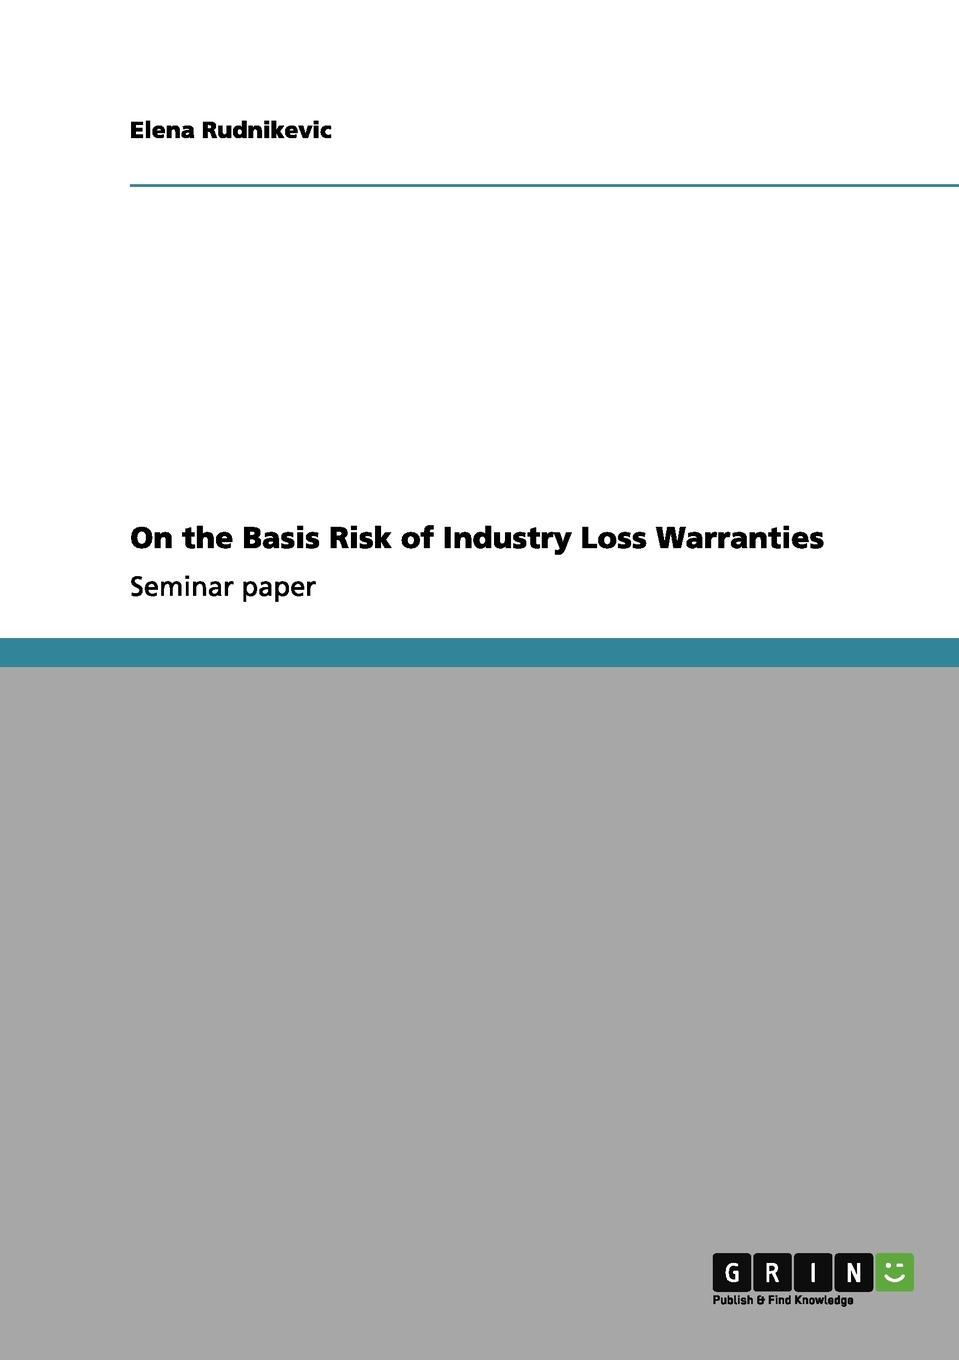 Elena Rudnikevic On the Basis Risk of Industry Loss Warranties leonard sammut reinsurance in risk and capital management